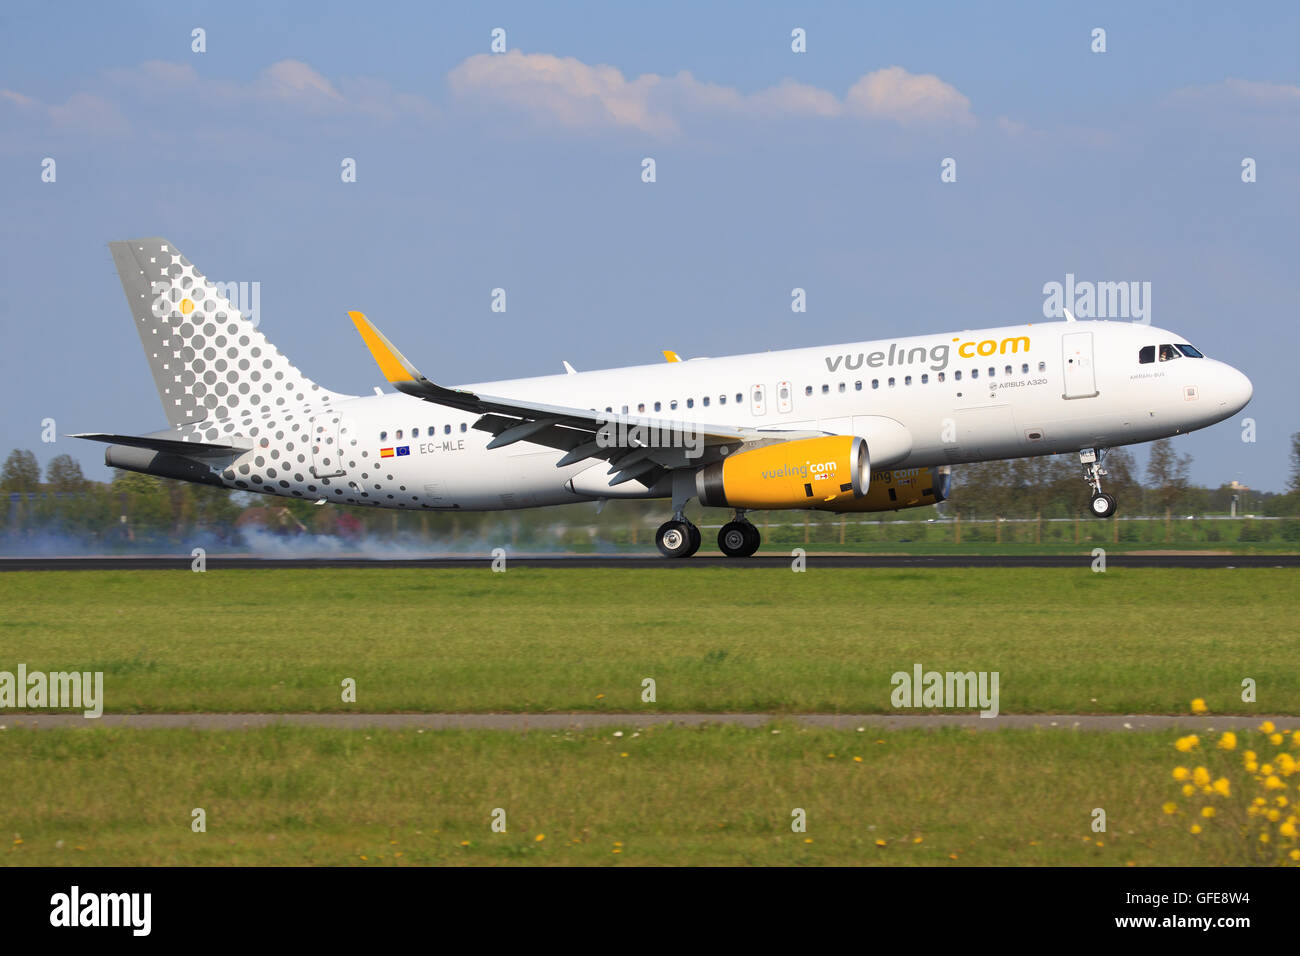 Amsterdam/Netherland march 12, 2016: Airbus A320 from Vueling landing at Amsterdam Airport - Stock Image